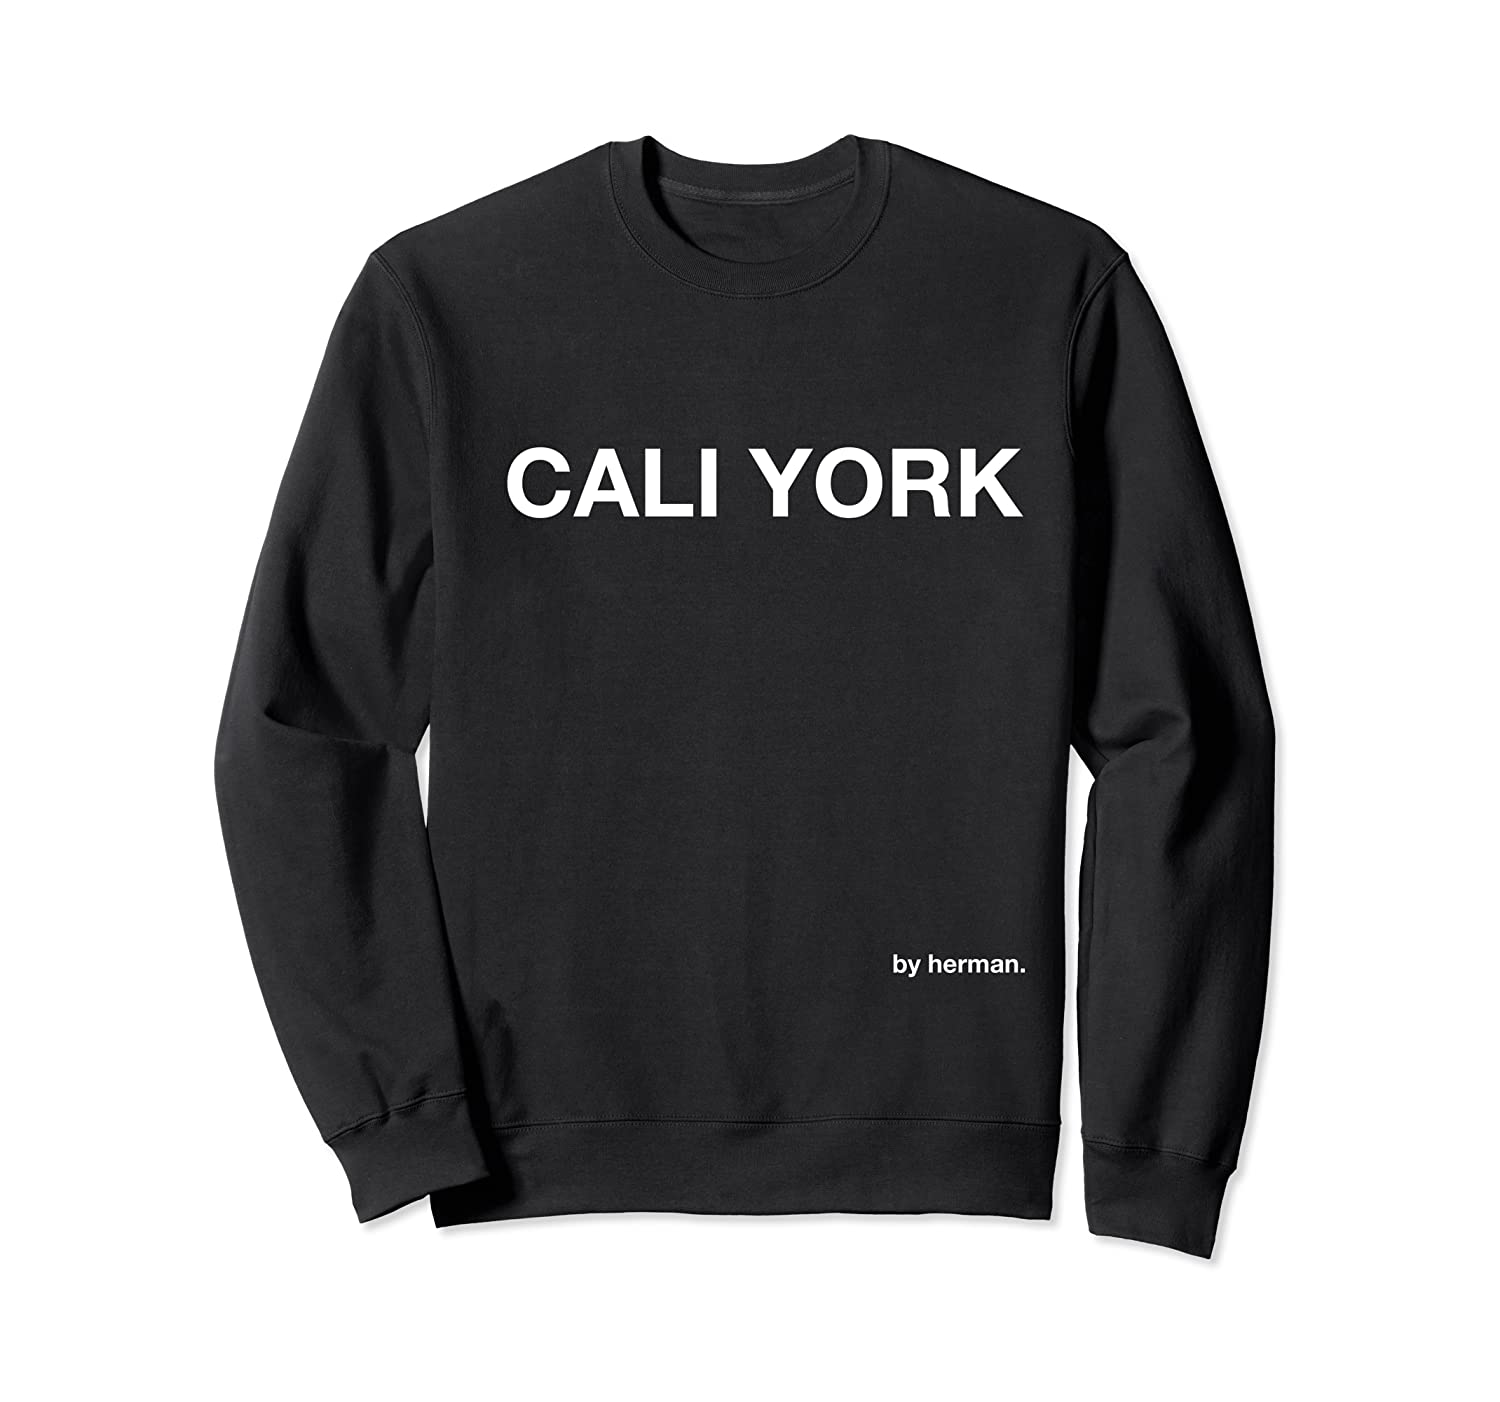 Cali York Sweatshirt Los Angeles// New York